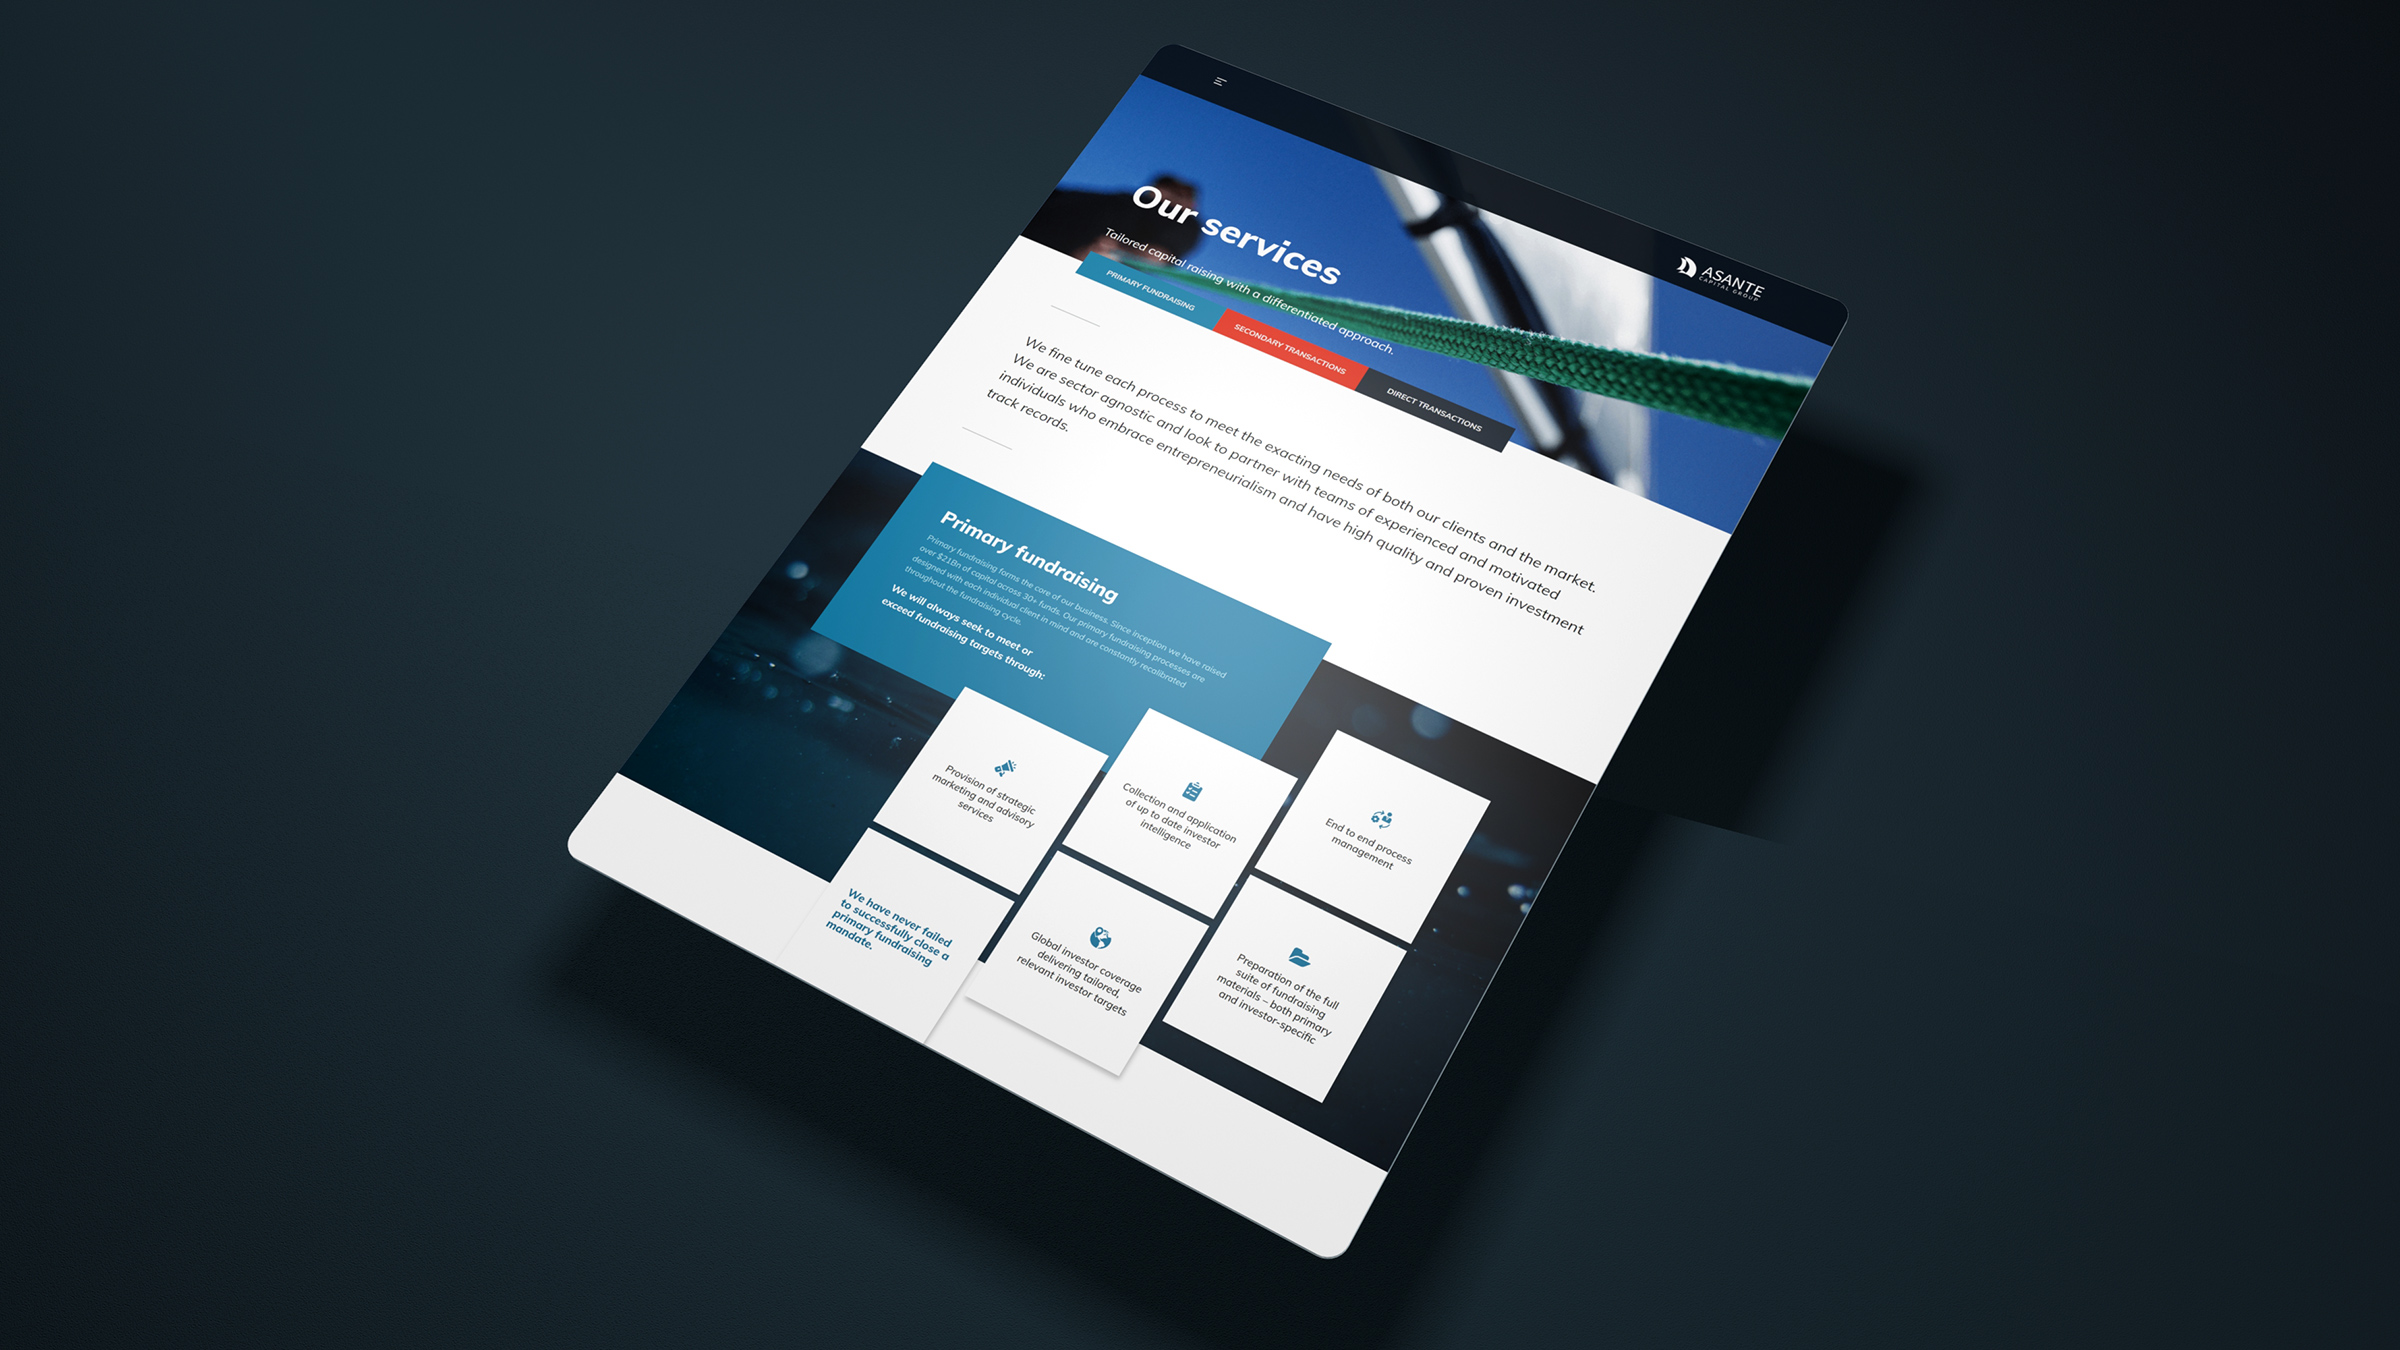 We developed in page animations for the loading of content in order to build upon the fluid nature of the website.